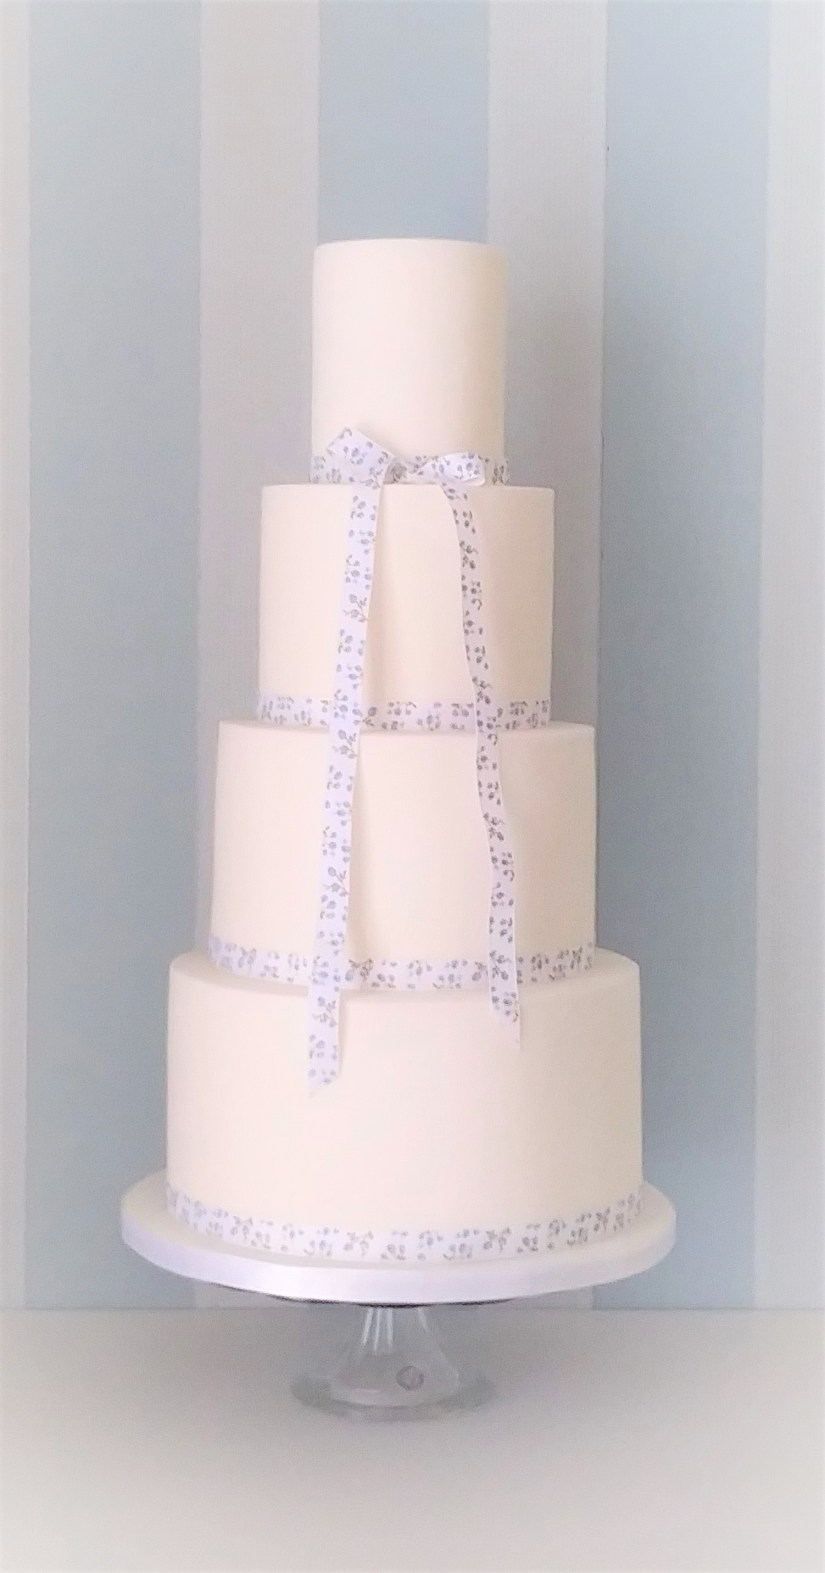 4 tier white wedding cake with blue and white floral ribbons by Cocoa & Whey Cakes in Dorset